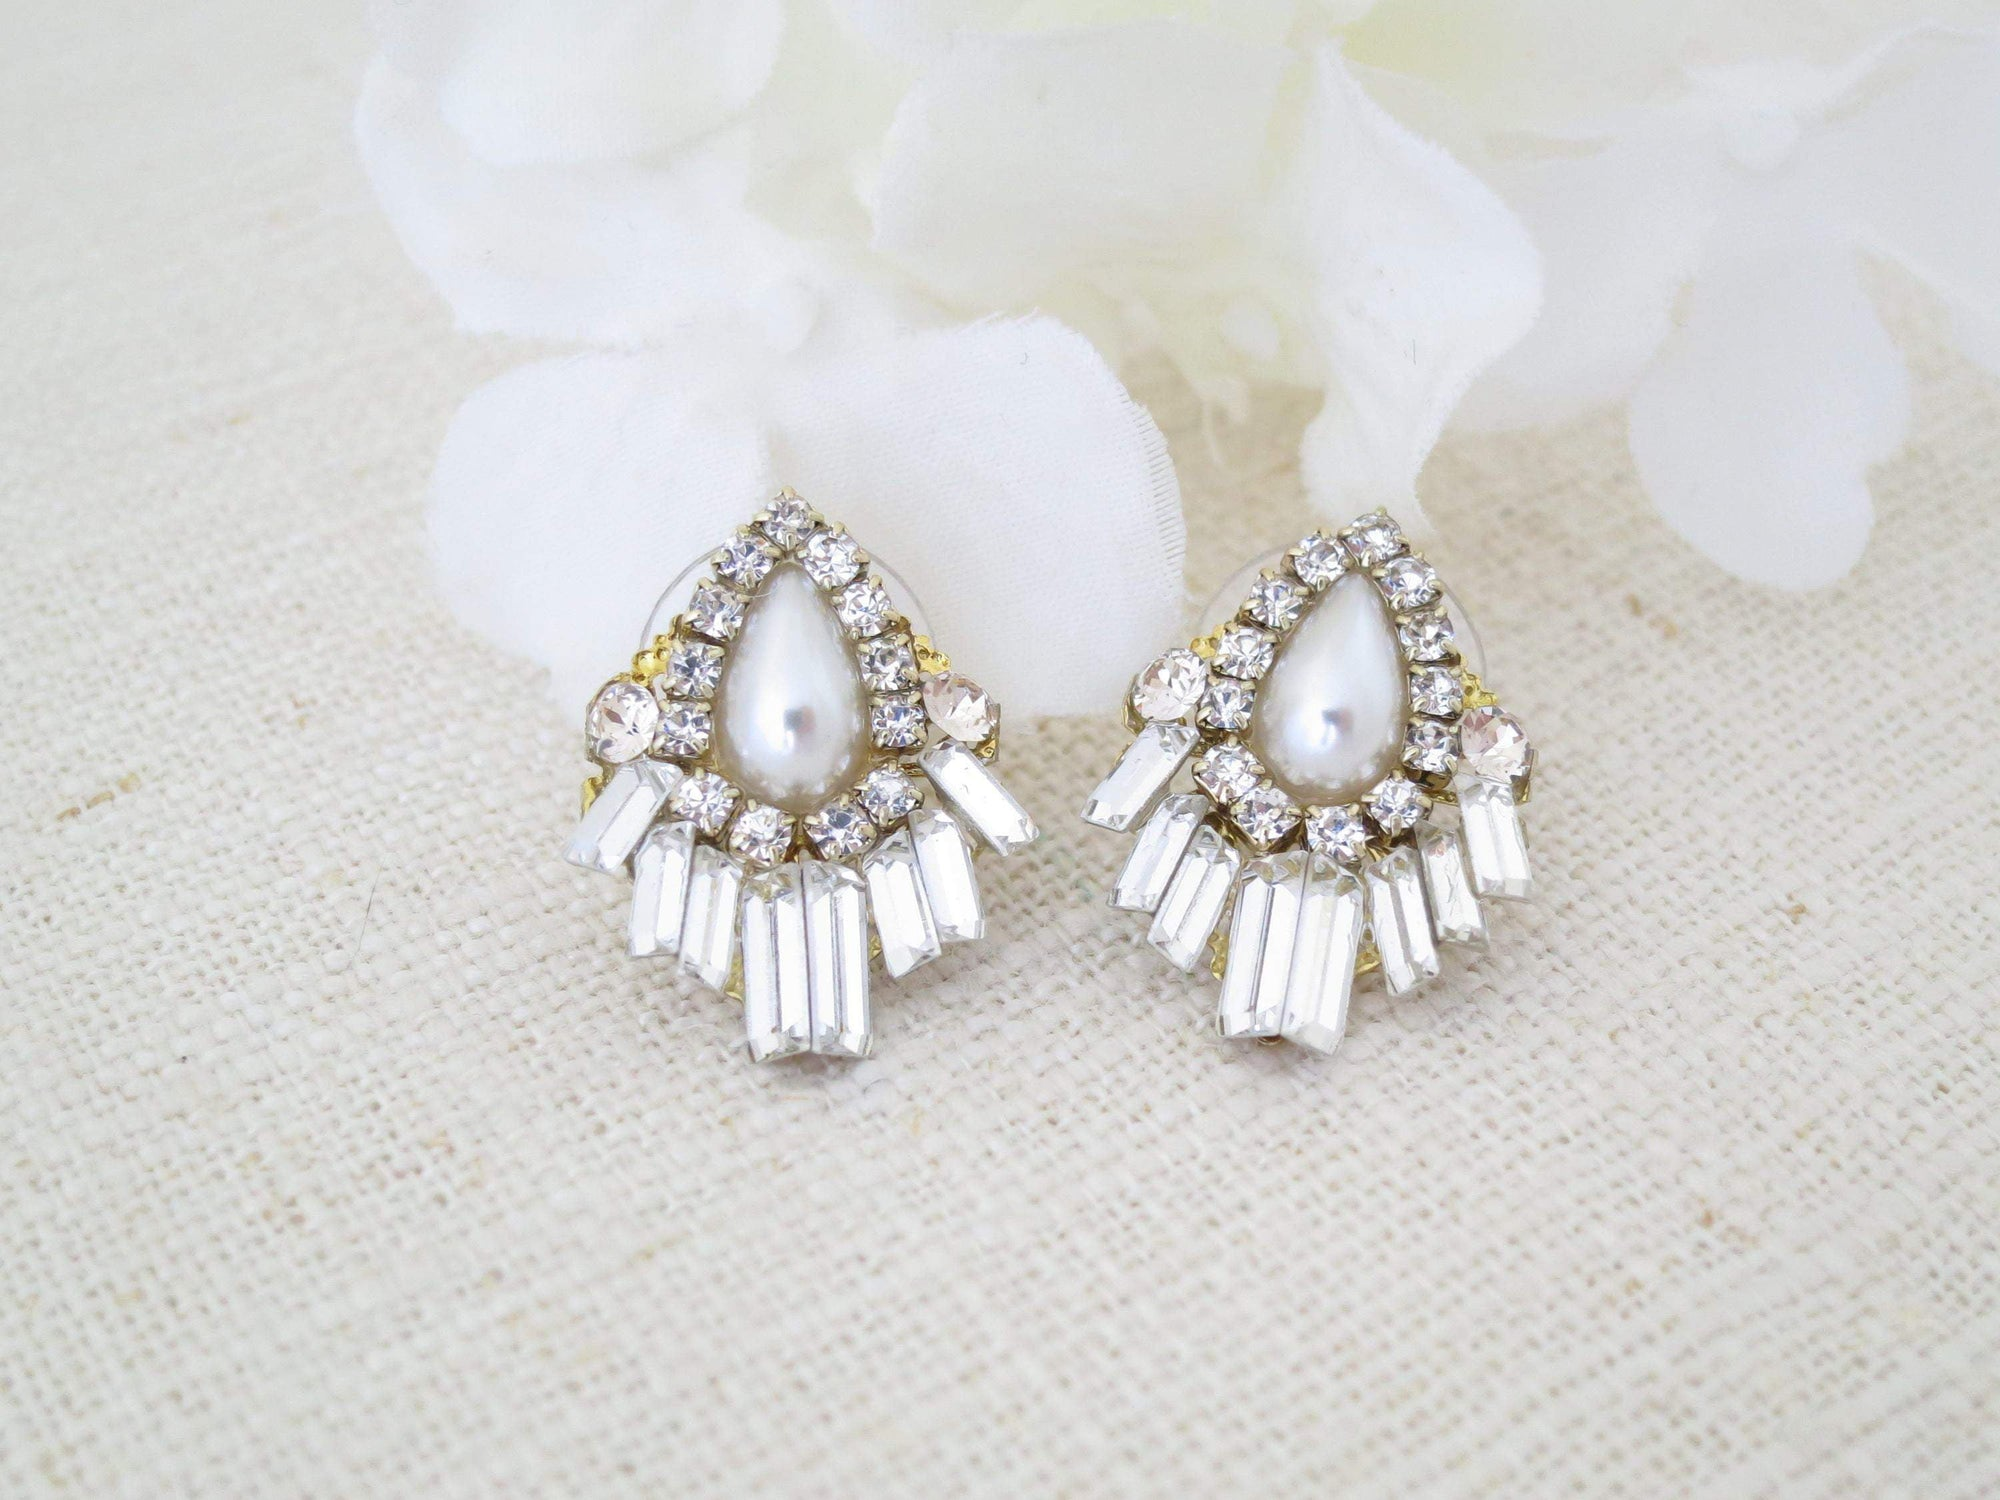 ADDISON:  Post Style Art Deco Baguette Earrings - BlingBaddaBoom - Minimalist, Vintage, Modern Wedding and Bridal Jewelry